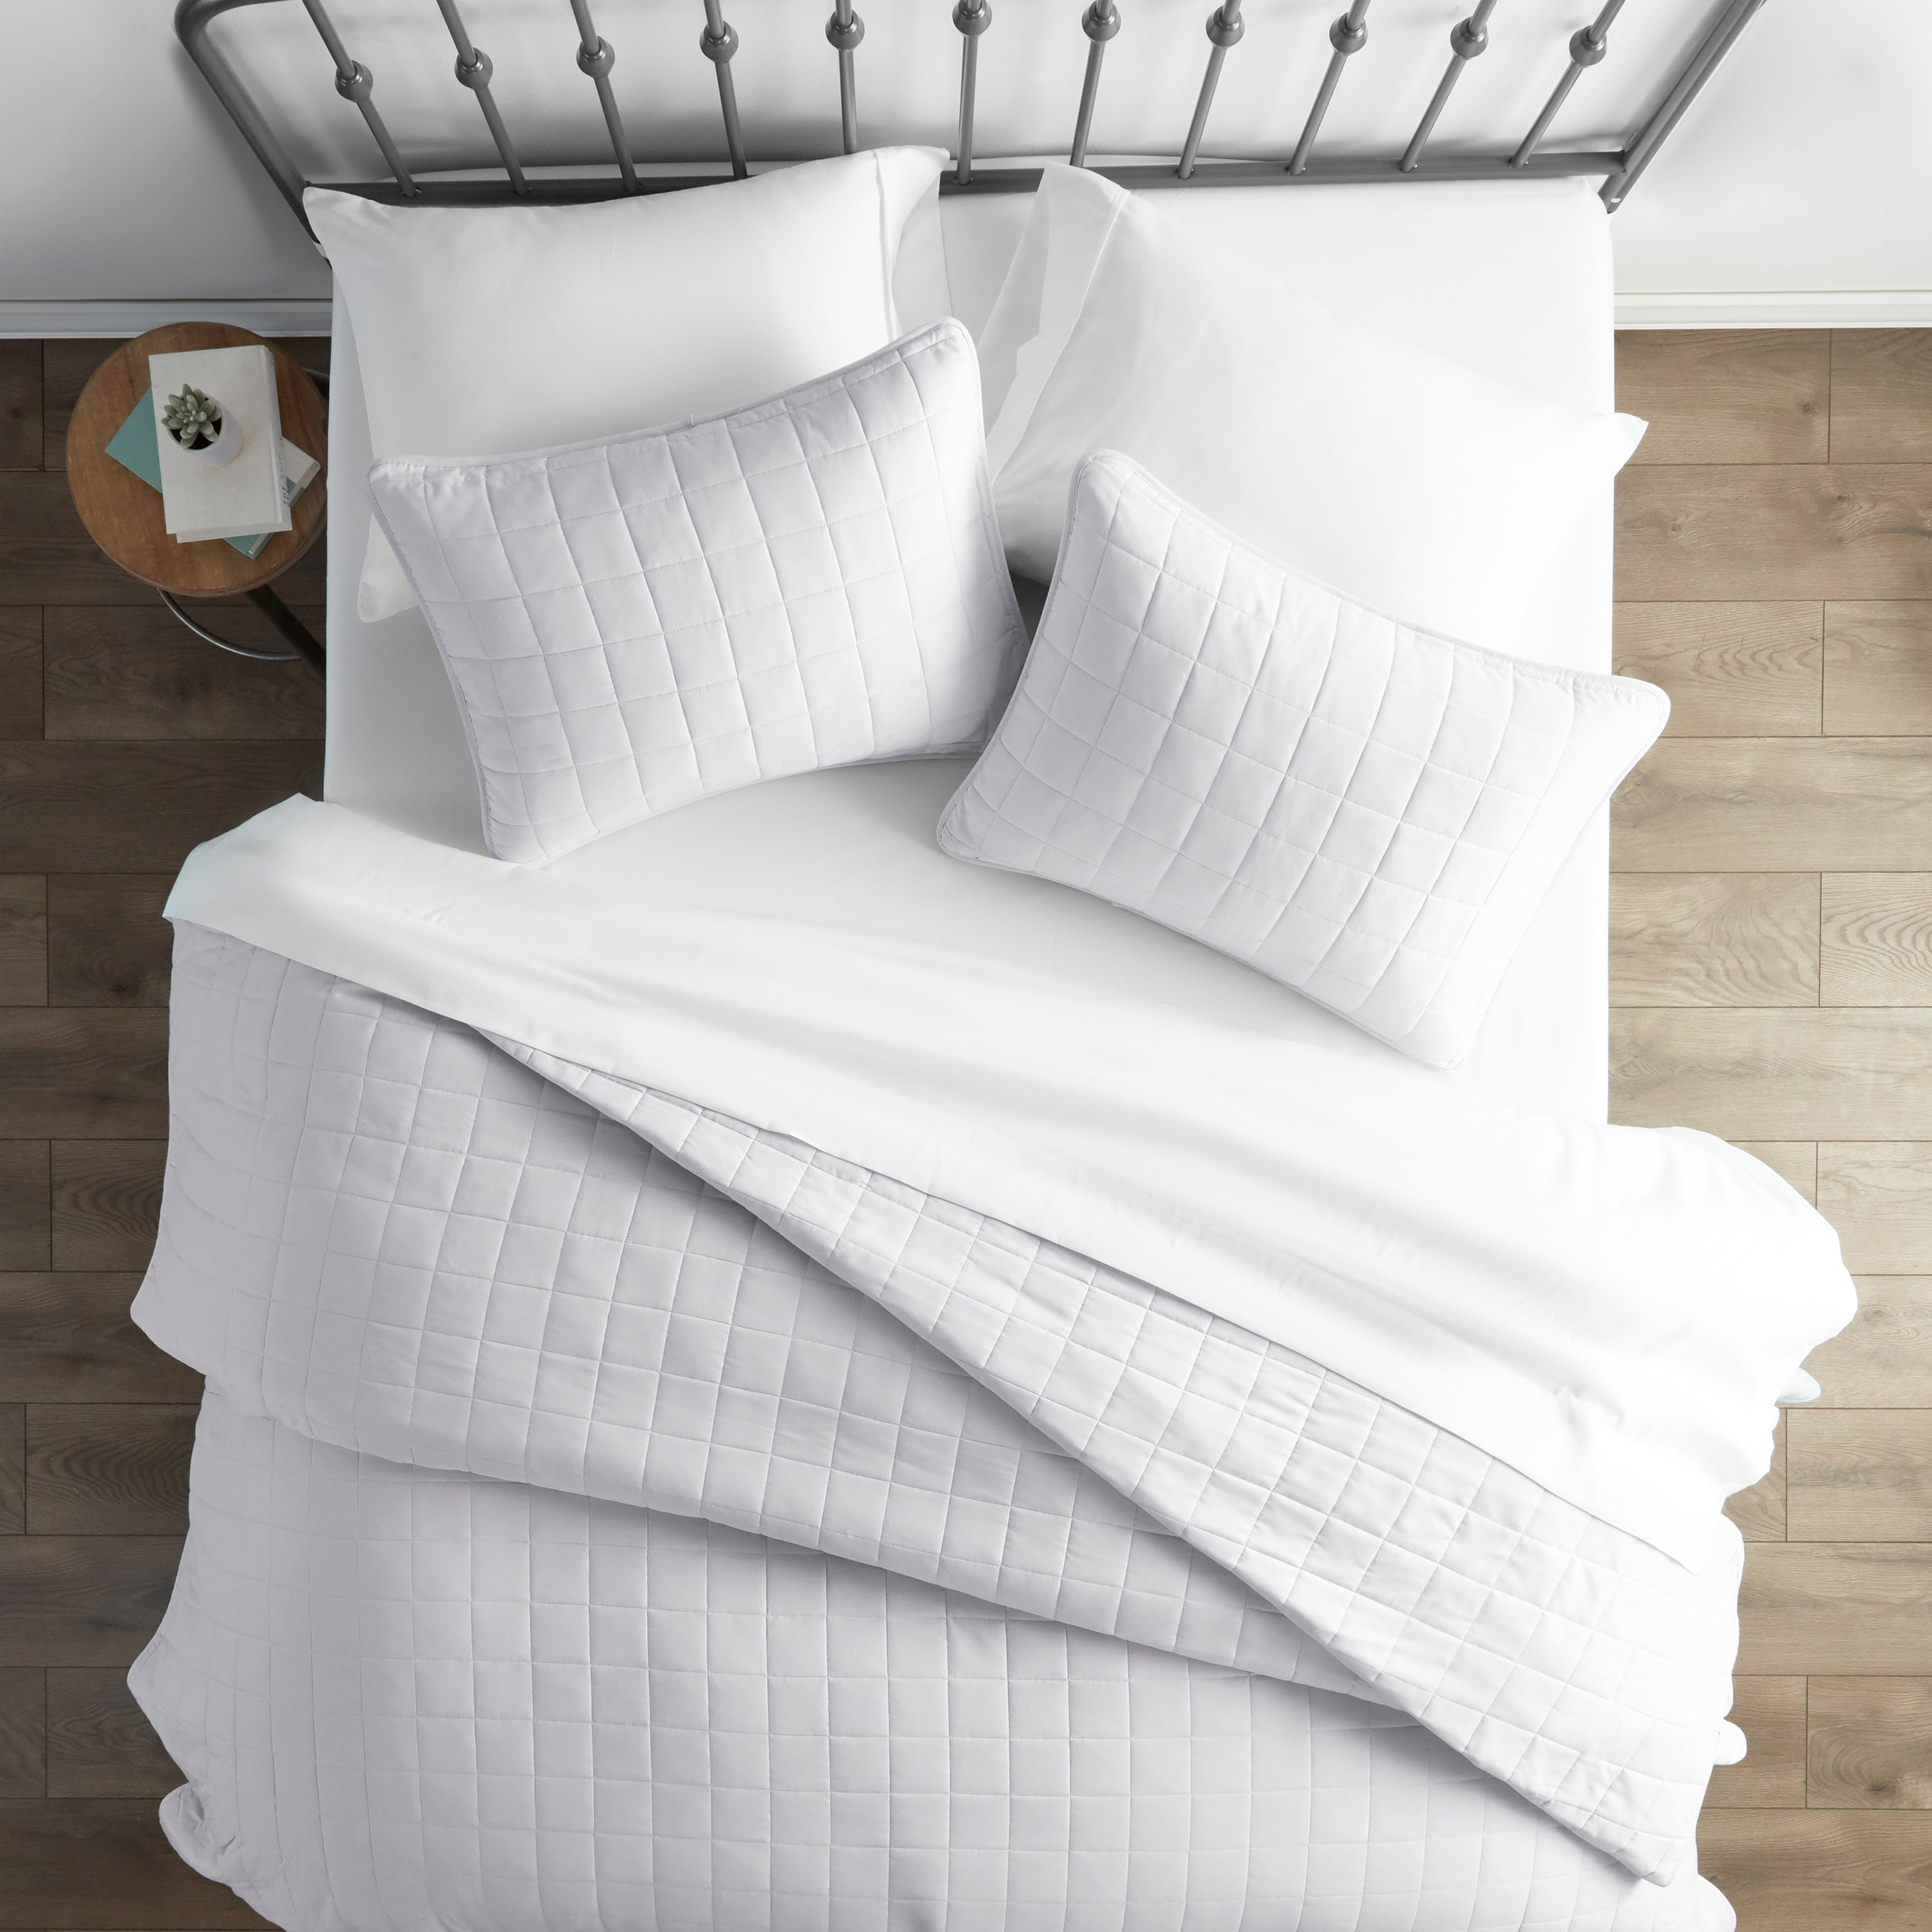 shopify-3-Piece Square Quilted Coverlet Set-10